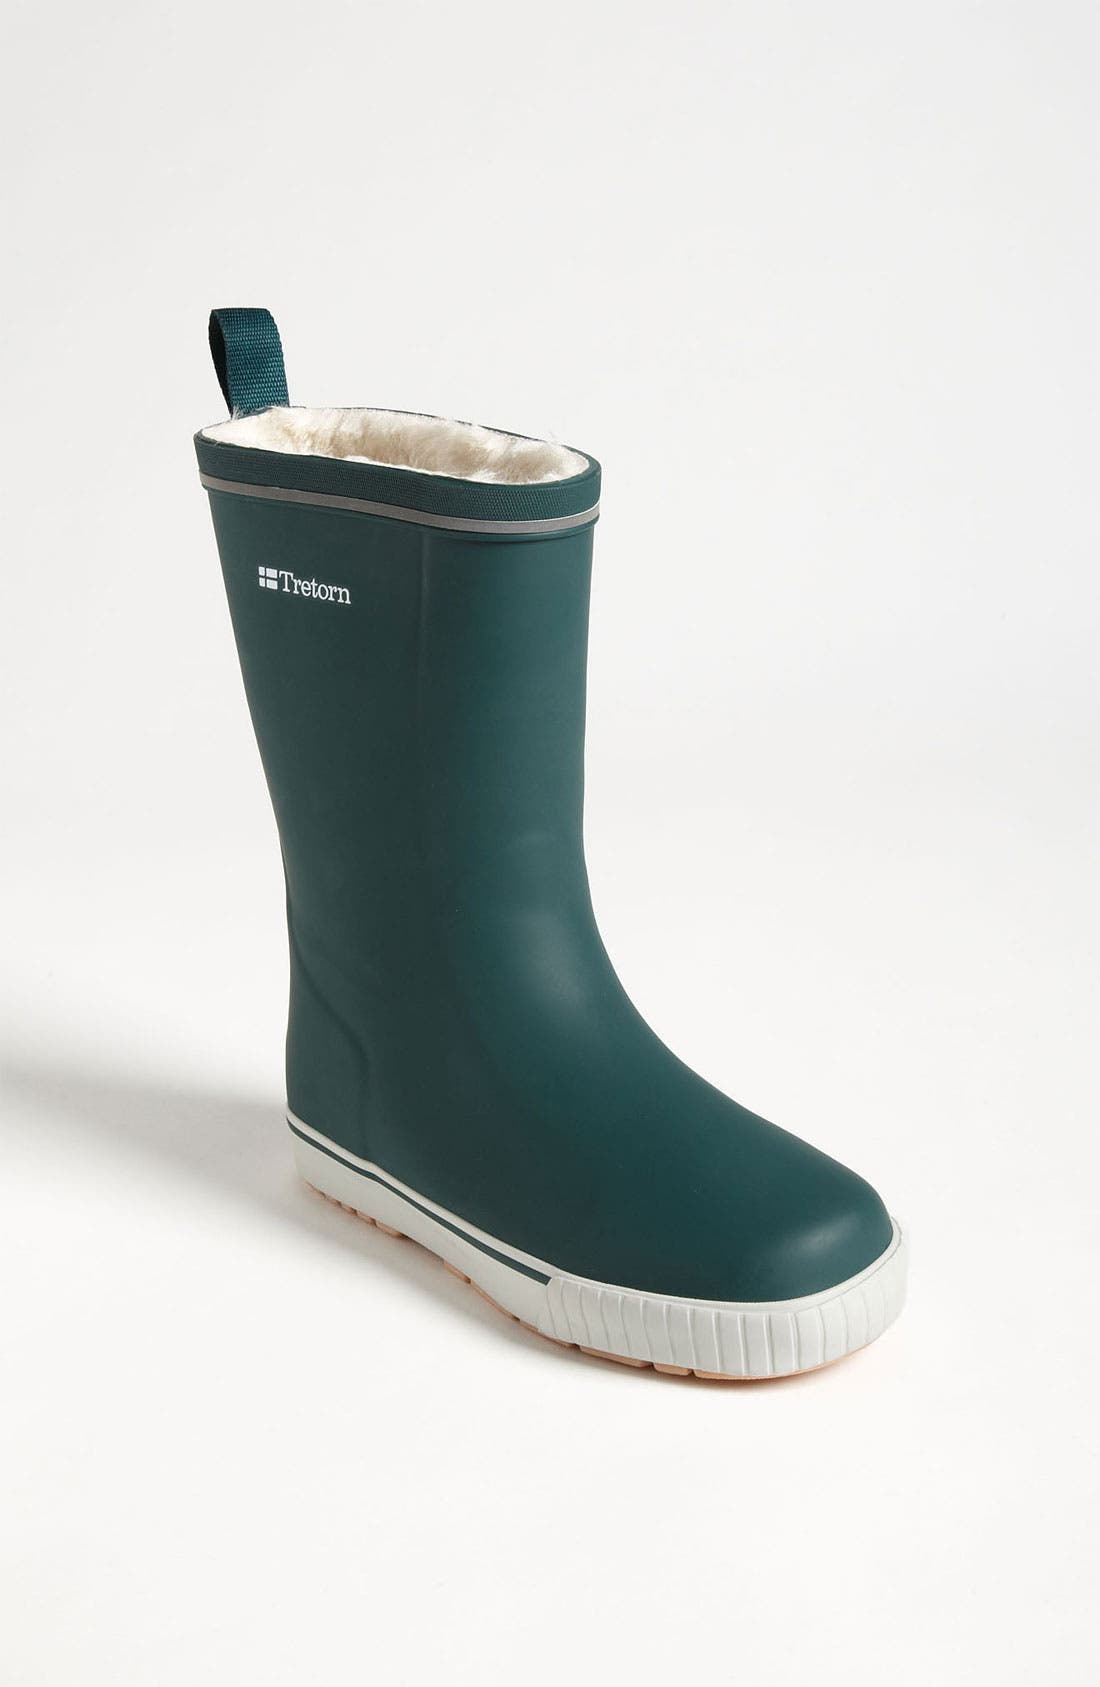 Alternate Image 1 Selected - Tretorn 'Skerry Vinter' Rain Boot (Women)